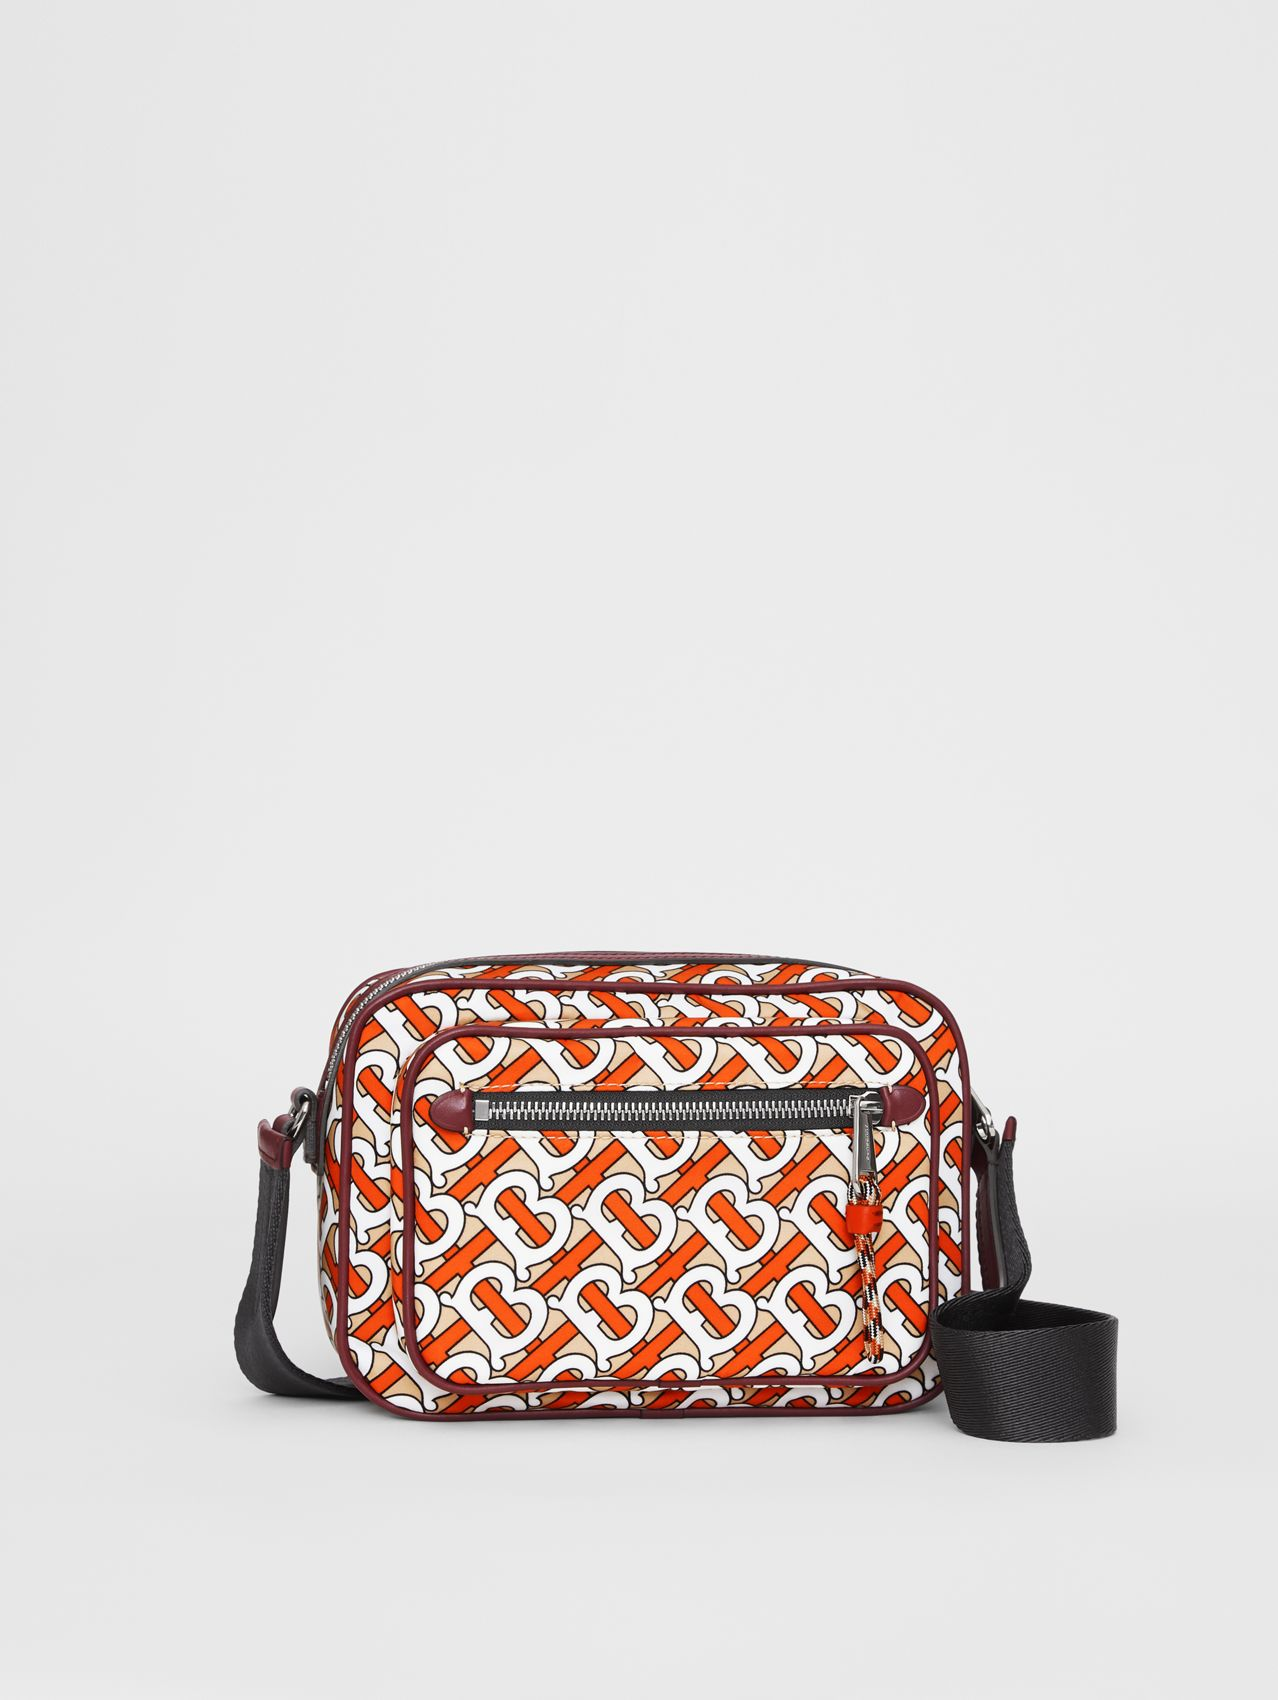 Monogram Print and Leather Crossbody Bag in Vermilion